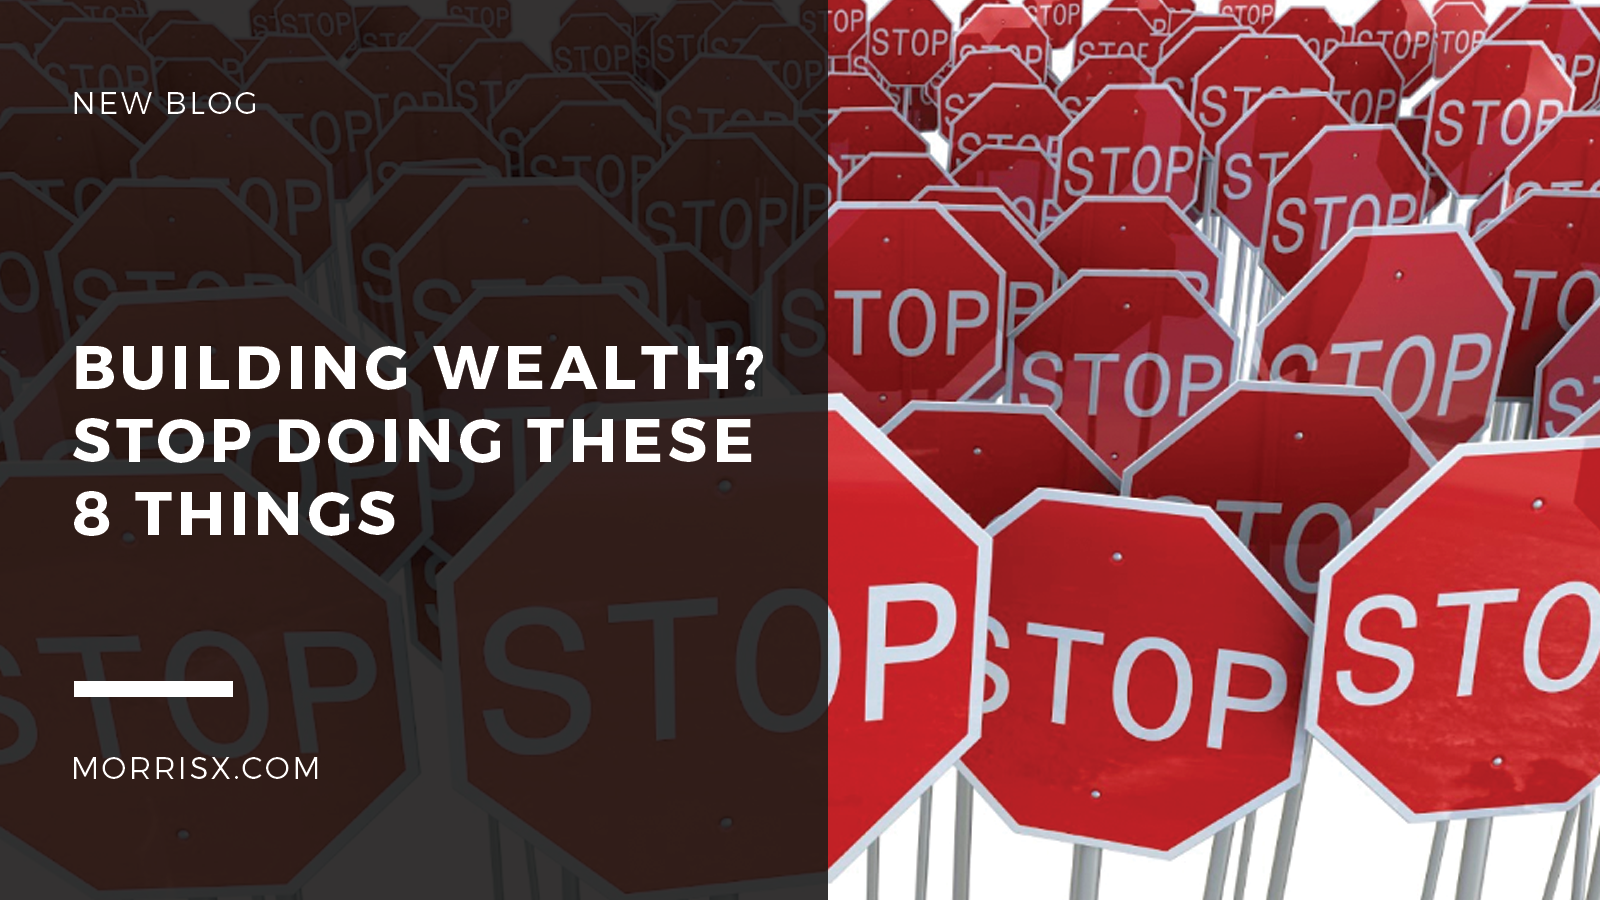 Building Wealth? Stop Doing These 8 Things